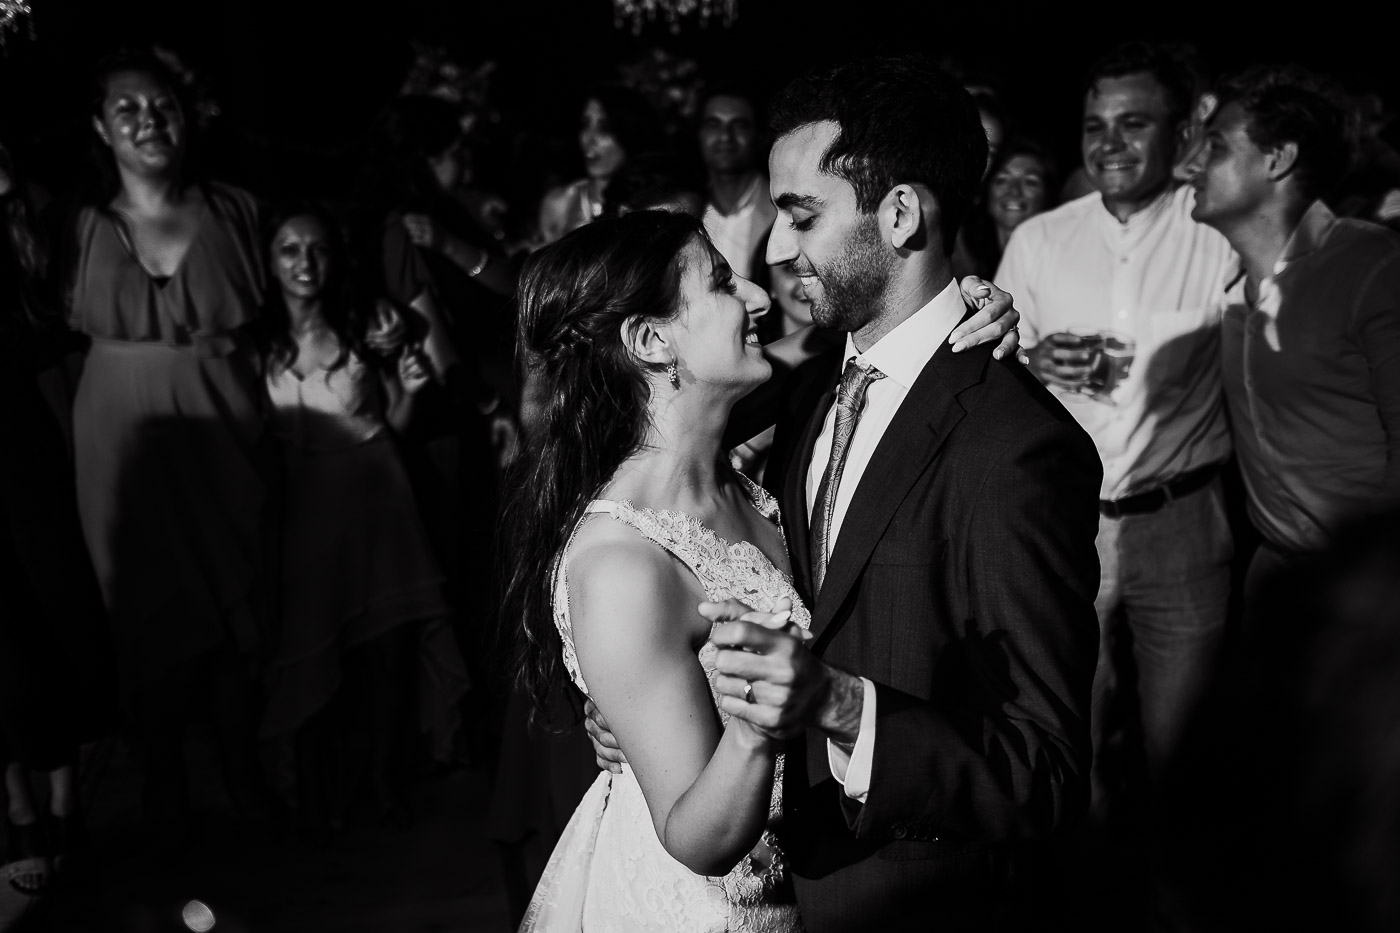 wedding-Hacienda-san-rafael-top-photographer-manuel-fijo